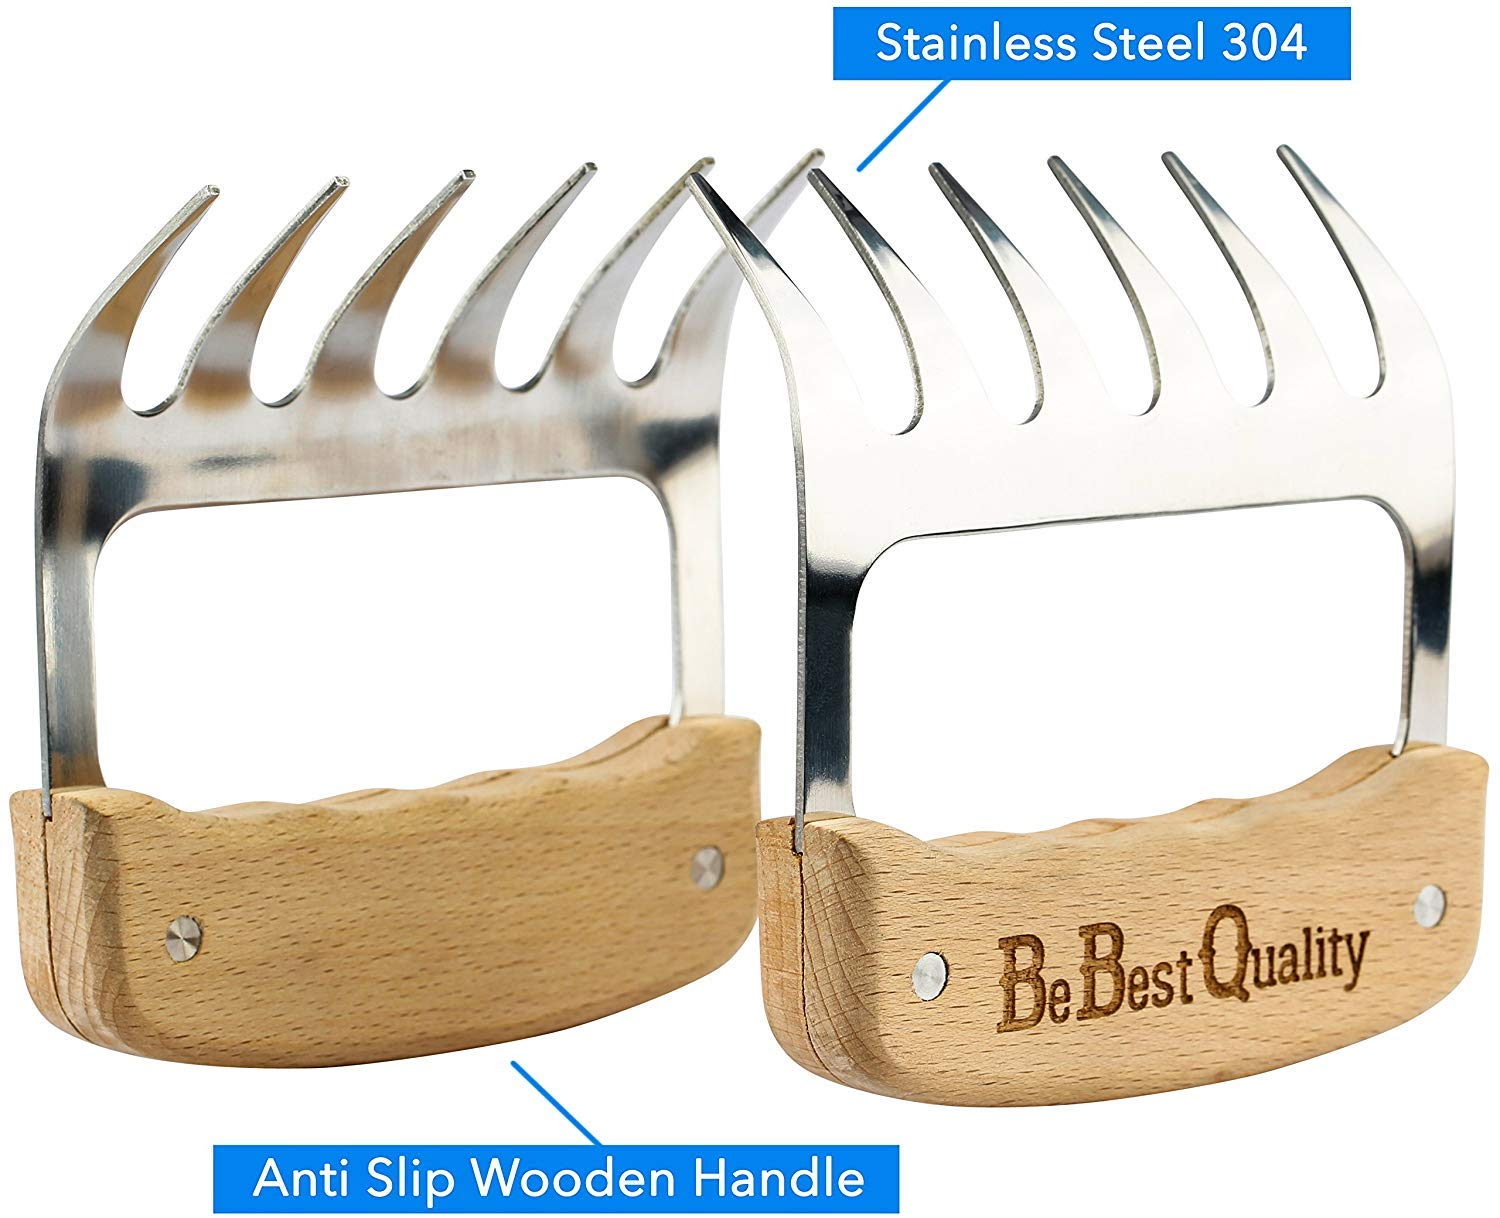 Smoker BPA-Free Metal Forks and Wooden No-Slip Grips for Grill MCBInfinity Meat Claws Stainless Steel Shredders Crockpot Turkey Carve BBQ Pulled Pork 2 Bear Claws Pull Handle Brisket